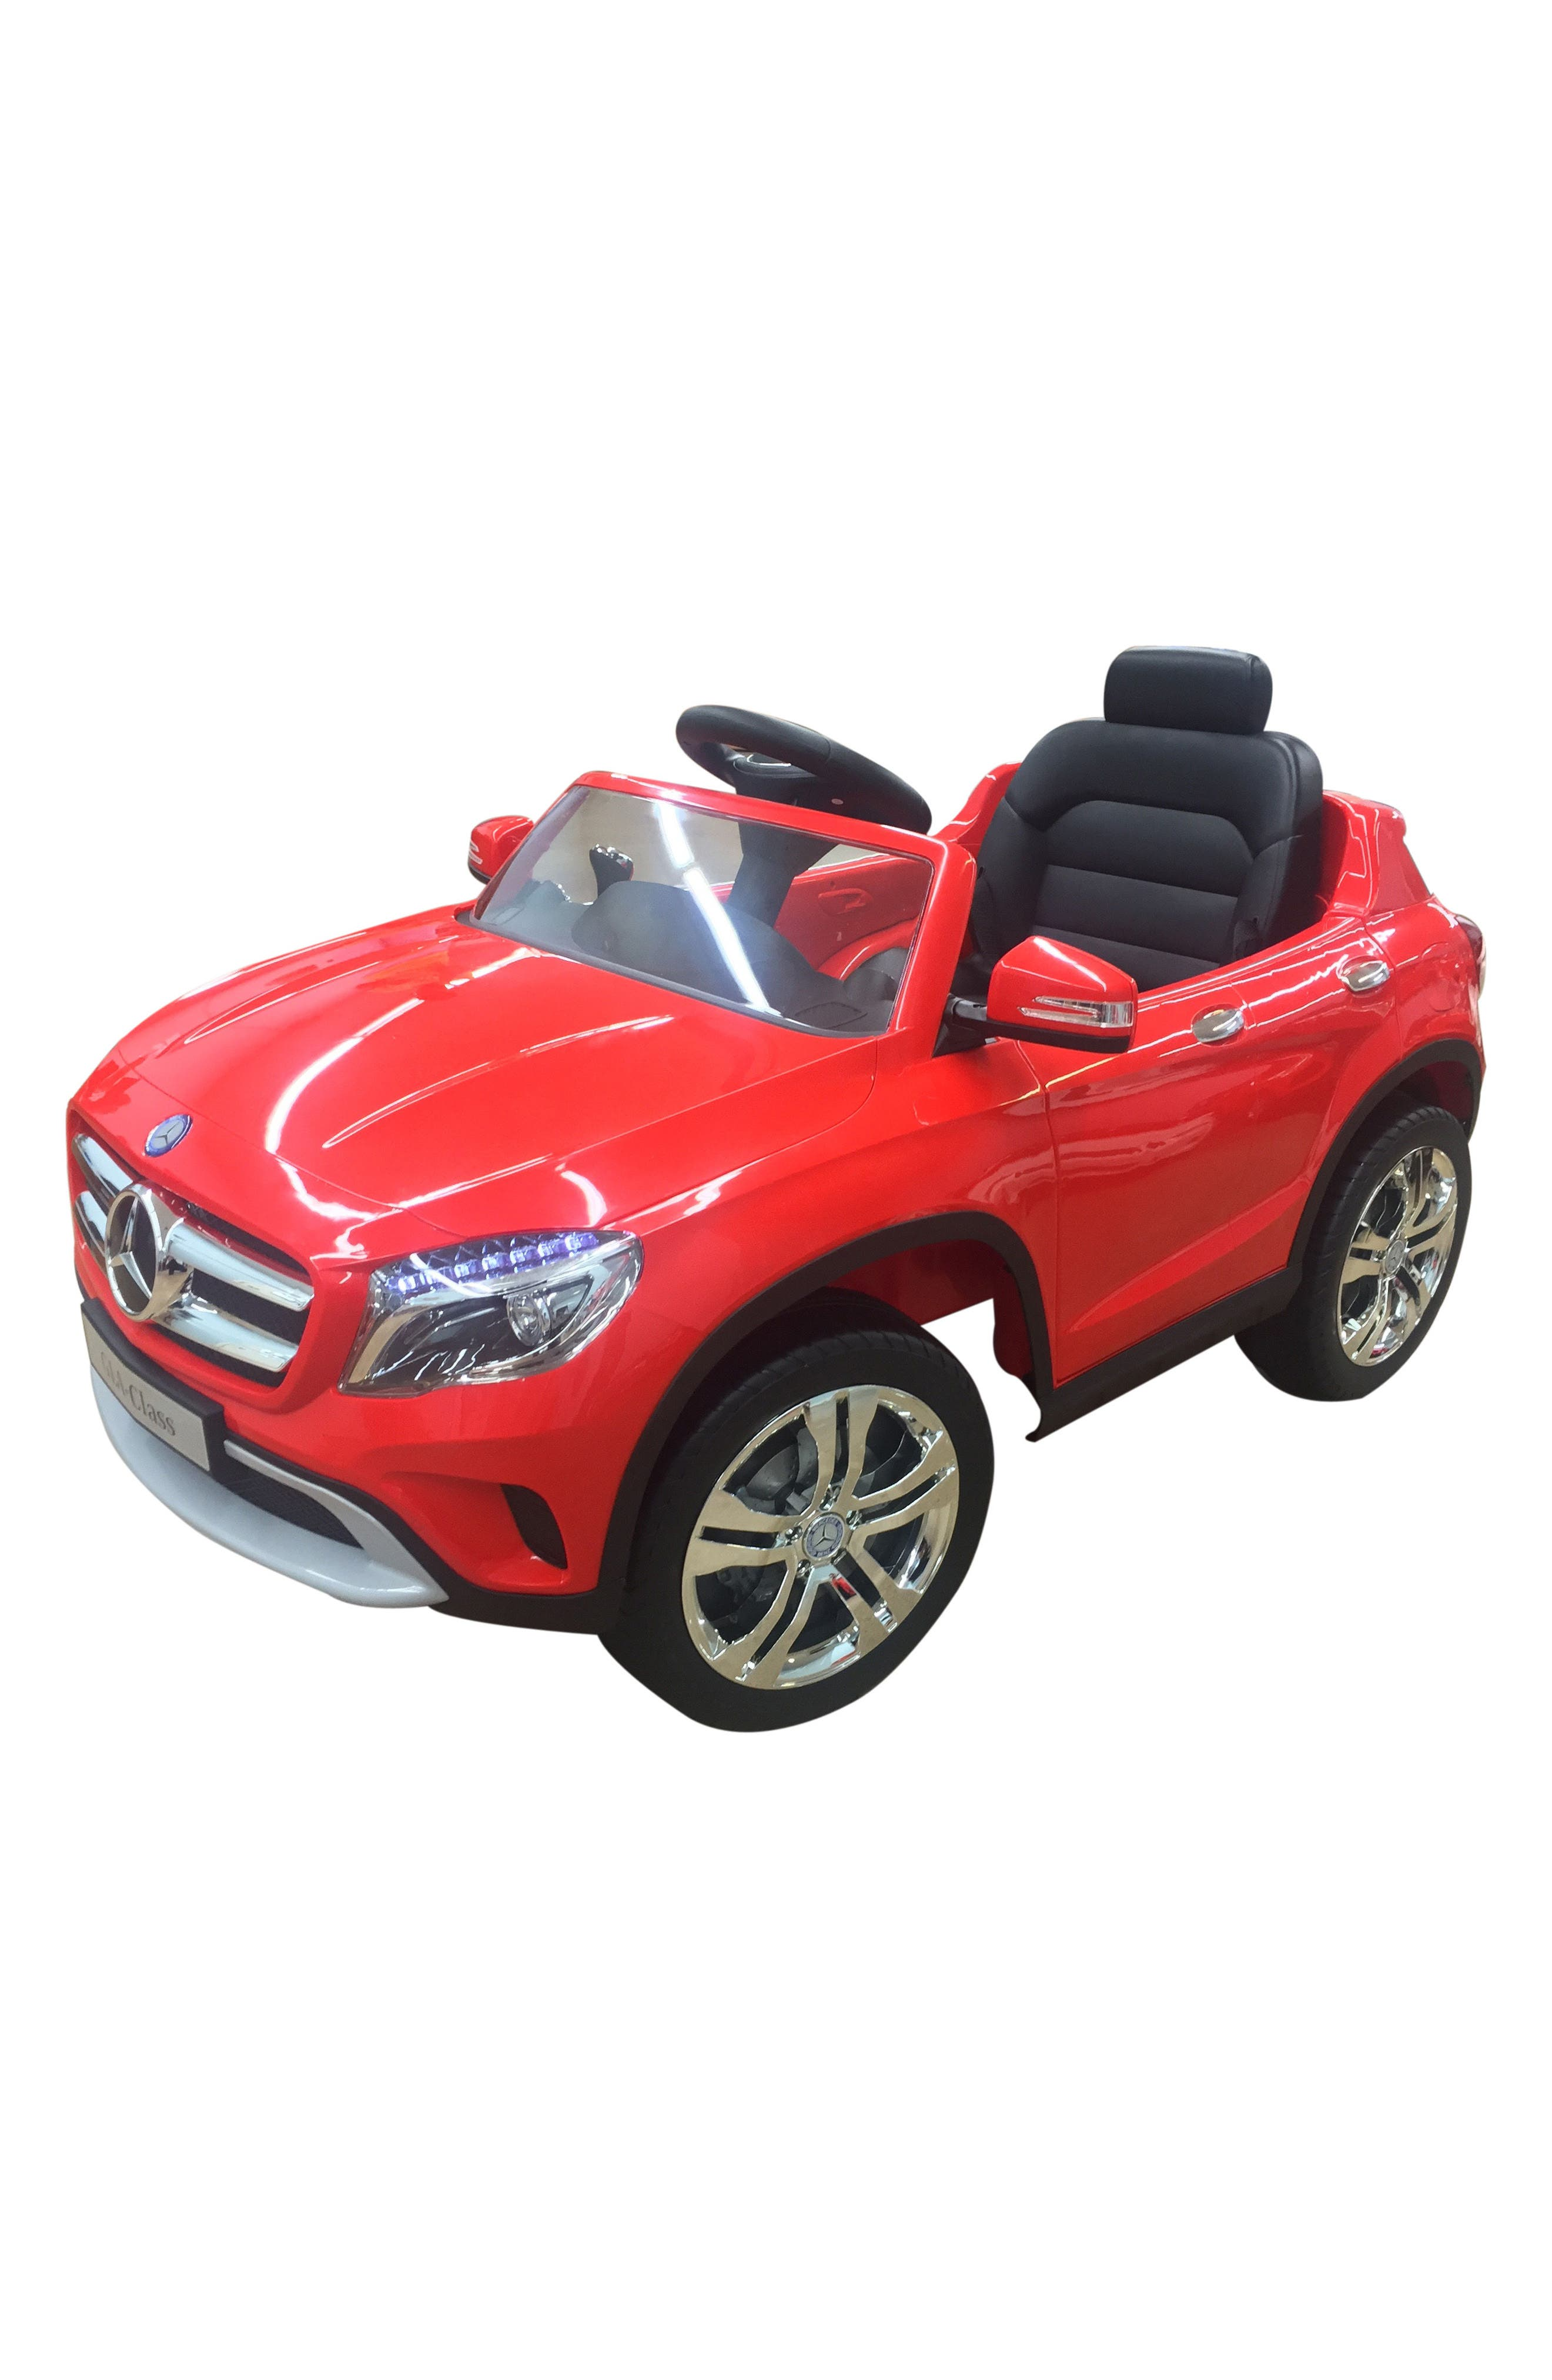 Main Image - Best Ride on Cars Mercedes GLA Ride-On Car